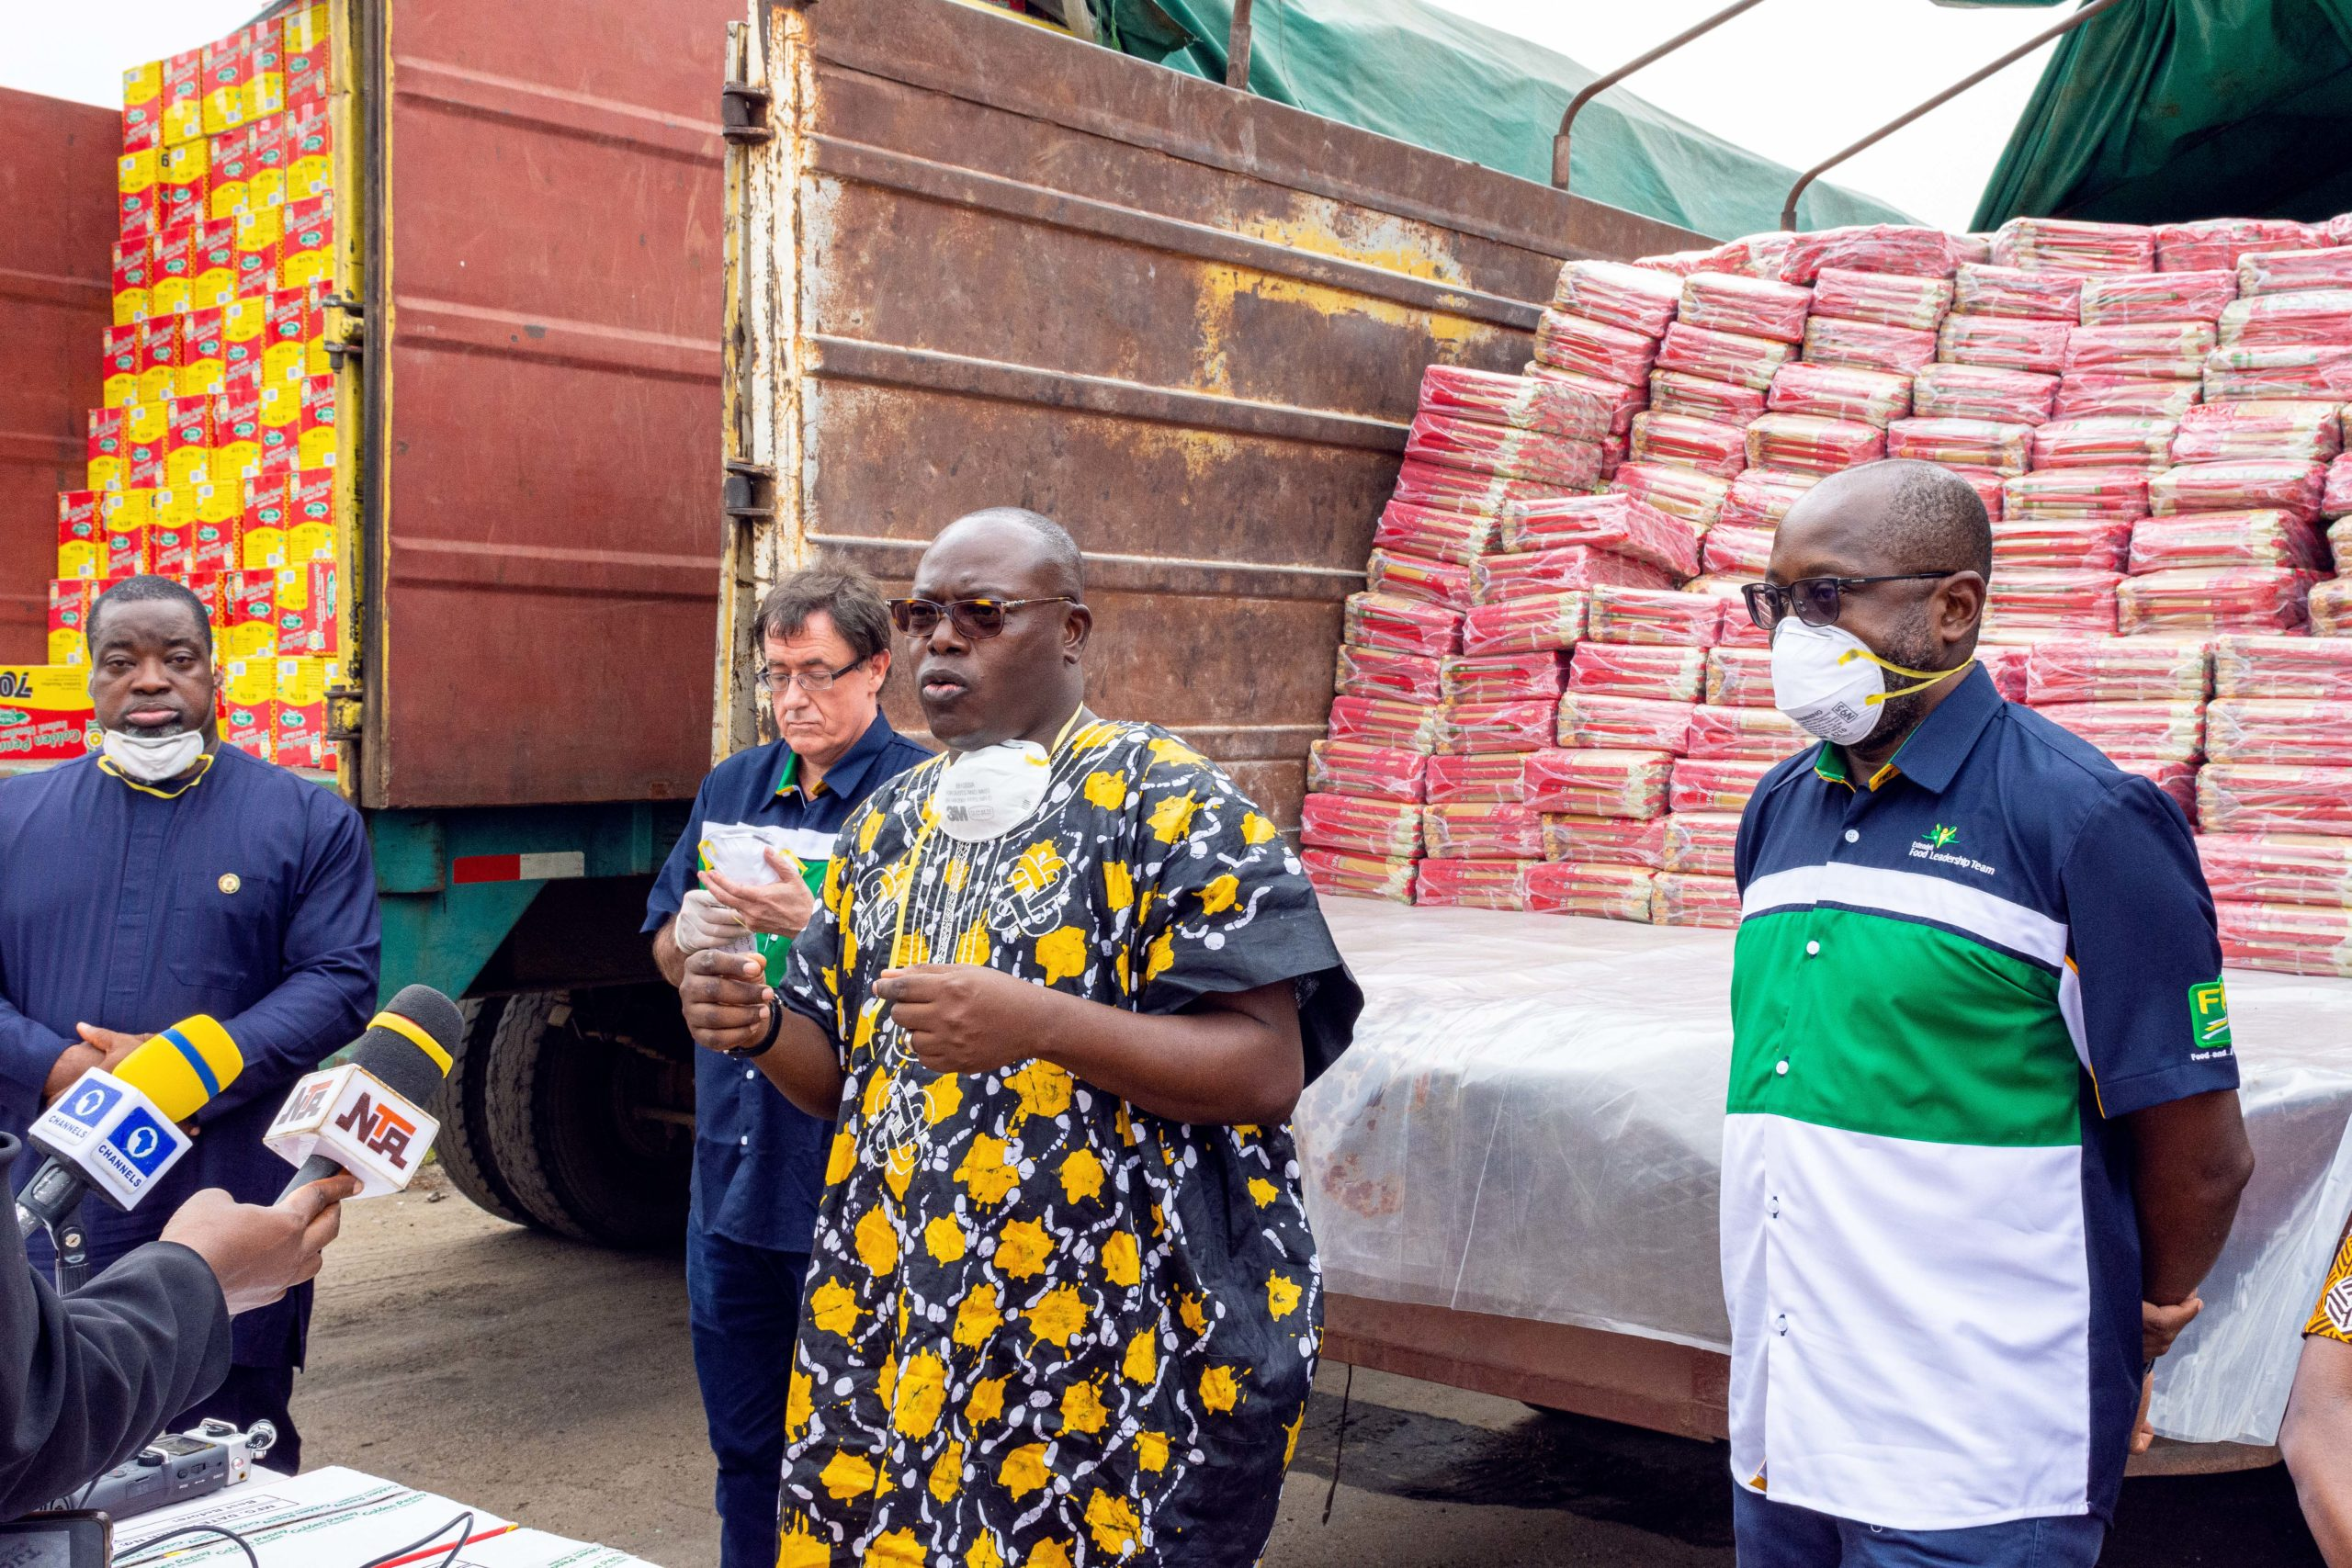 Golden Penny Donates Food Products Across The Country